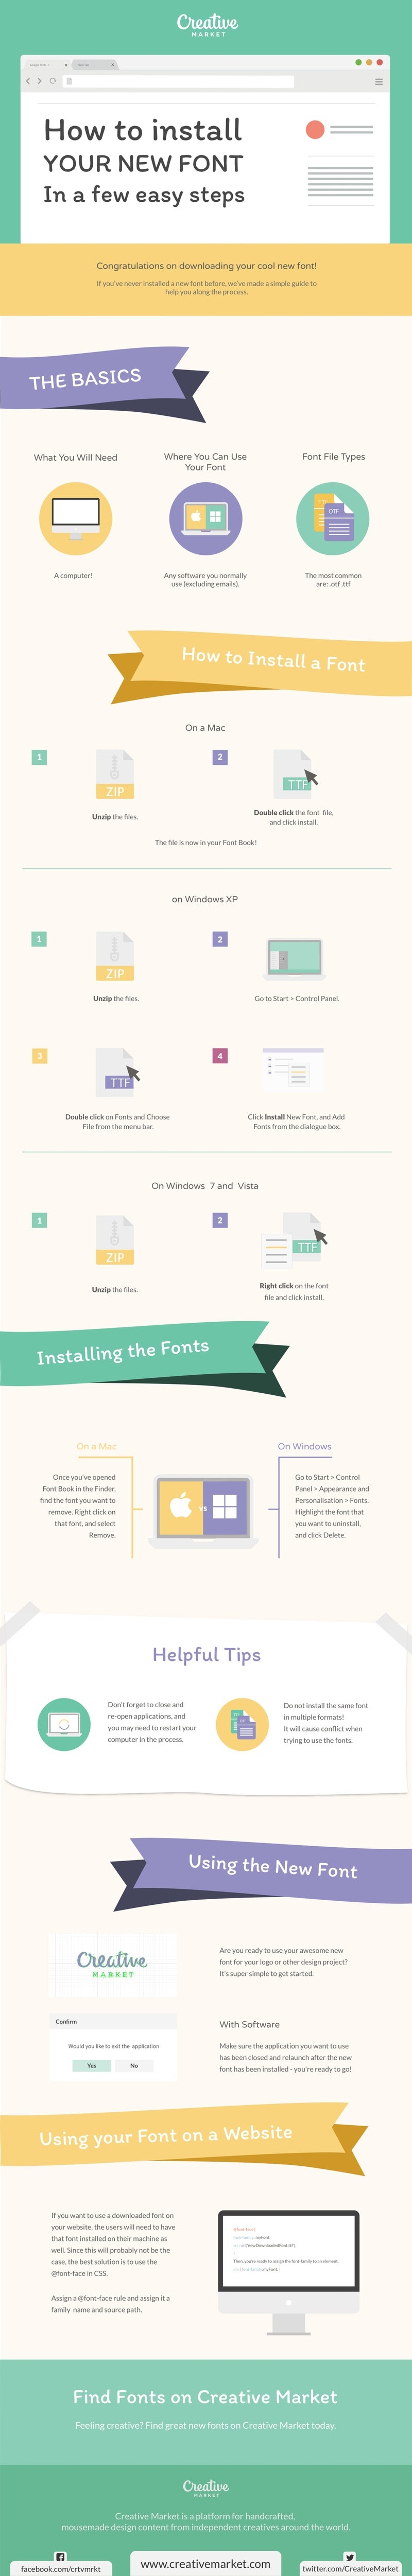 How to Install Your New Font in a Few Easy Steps - #infographic